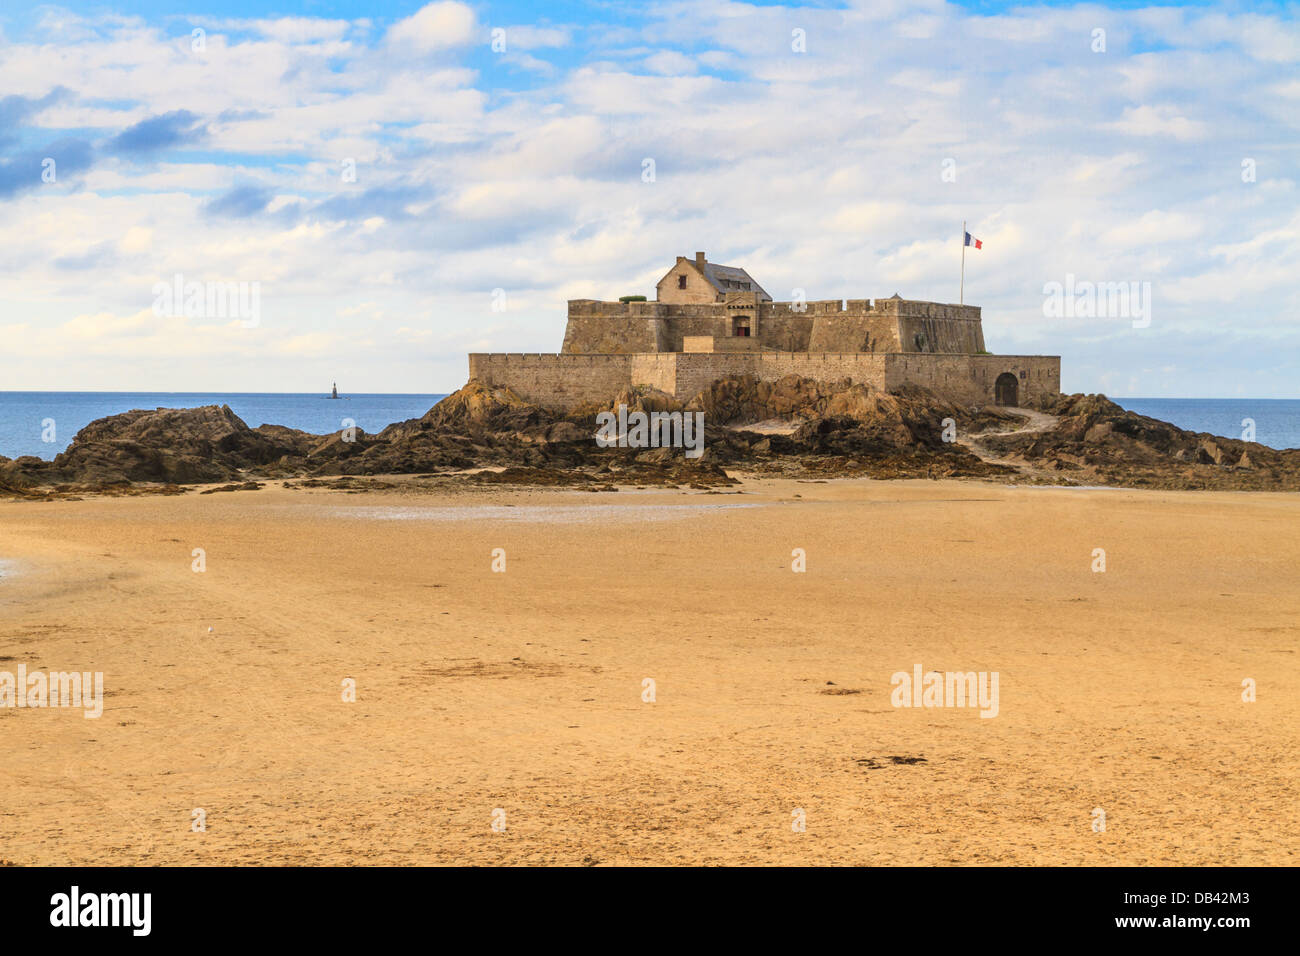 Saint Malo View on Fort National, Brittany, France - Stock Image